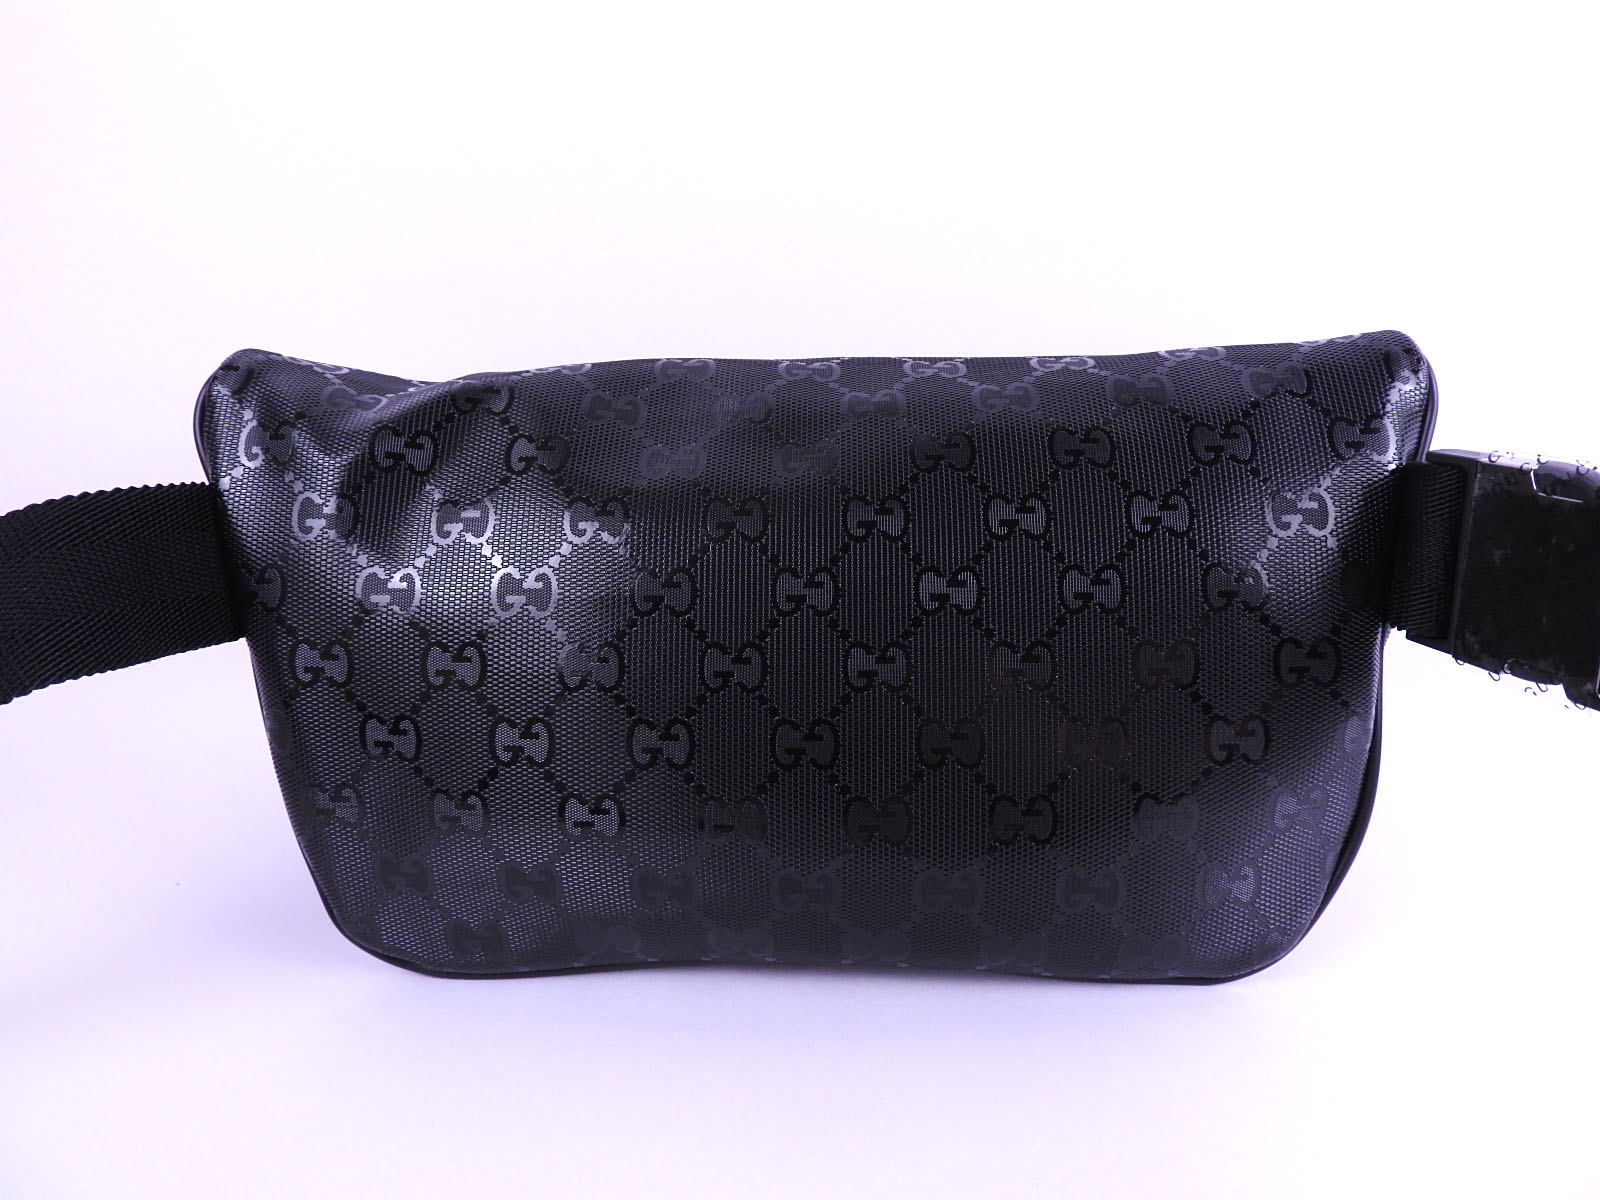 e9e4b123c519 Auth GUCCI GG Imprime Waist Belt Pouch Body Bag PVC Leather Black ...